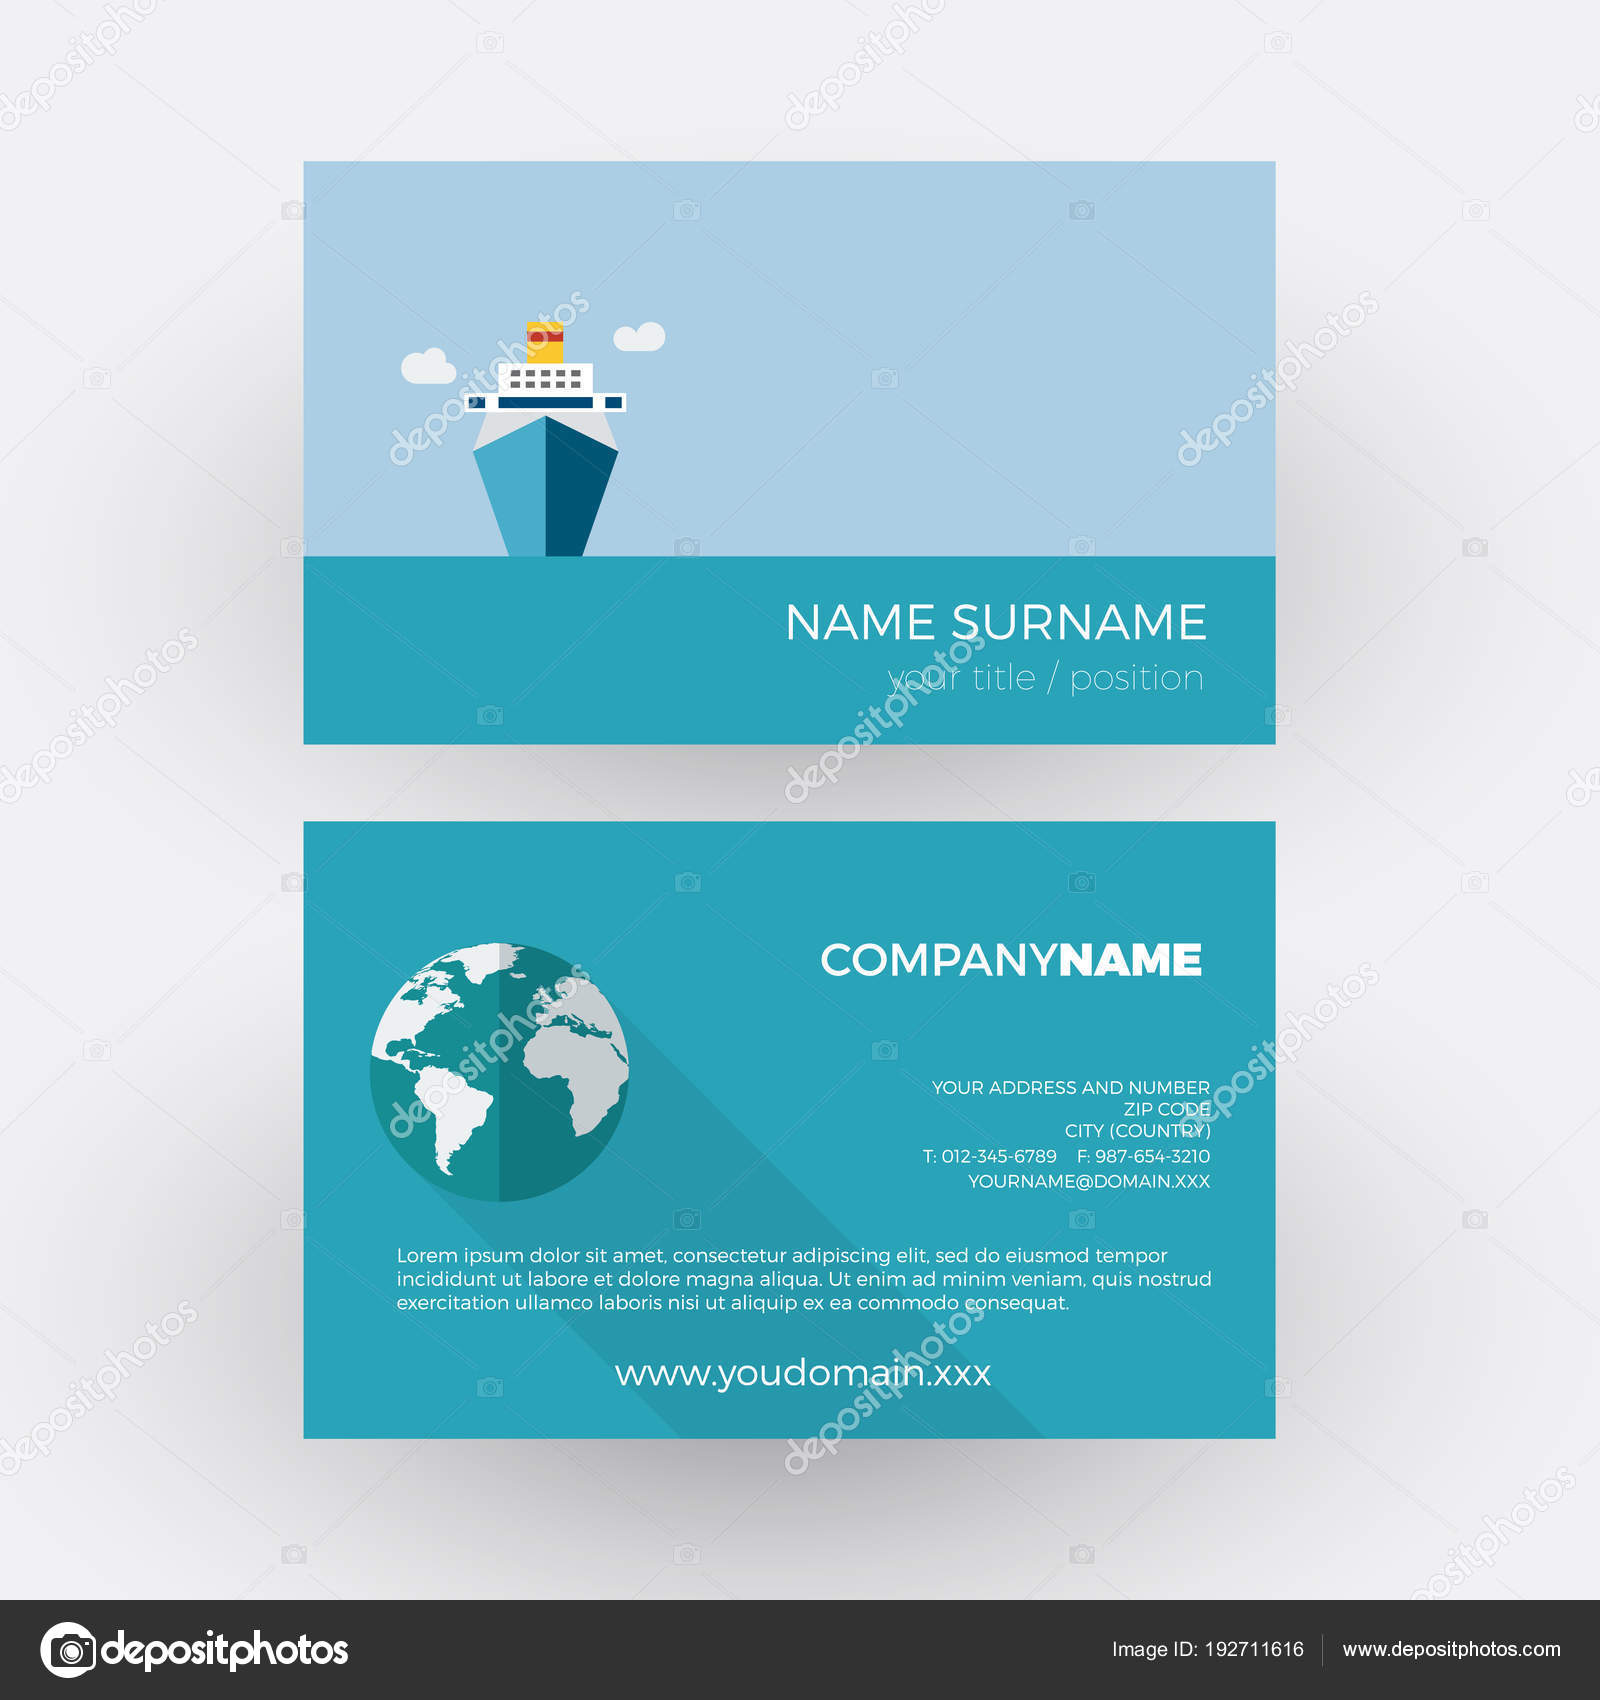 Cruise Ship Travel Agency Vector Professional Business Card